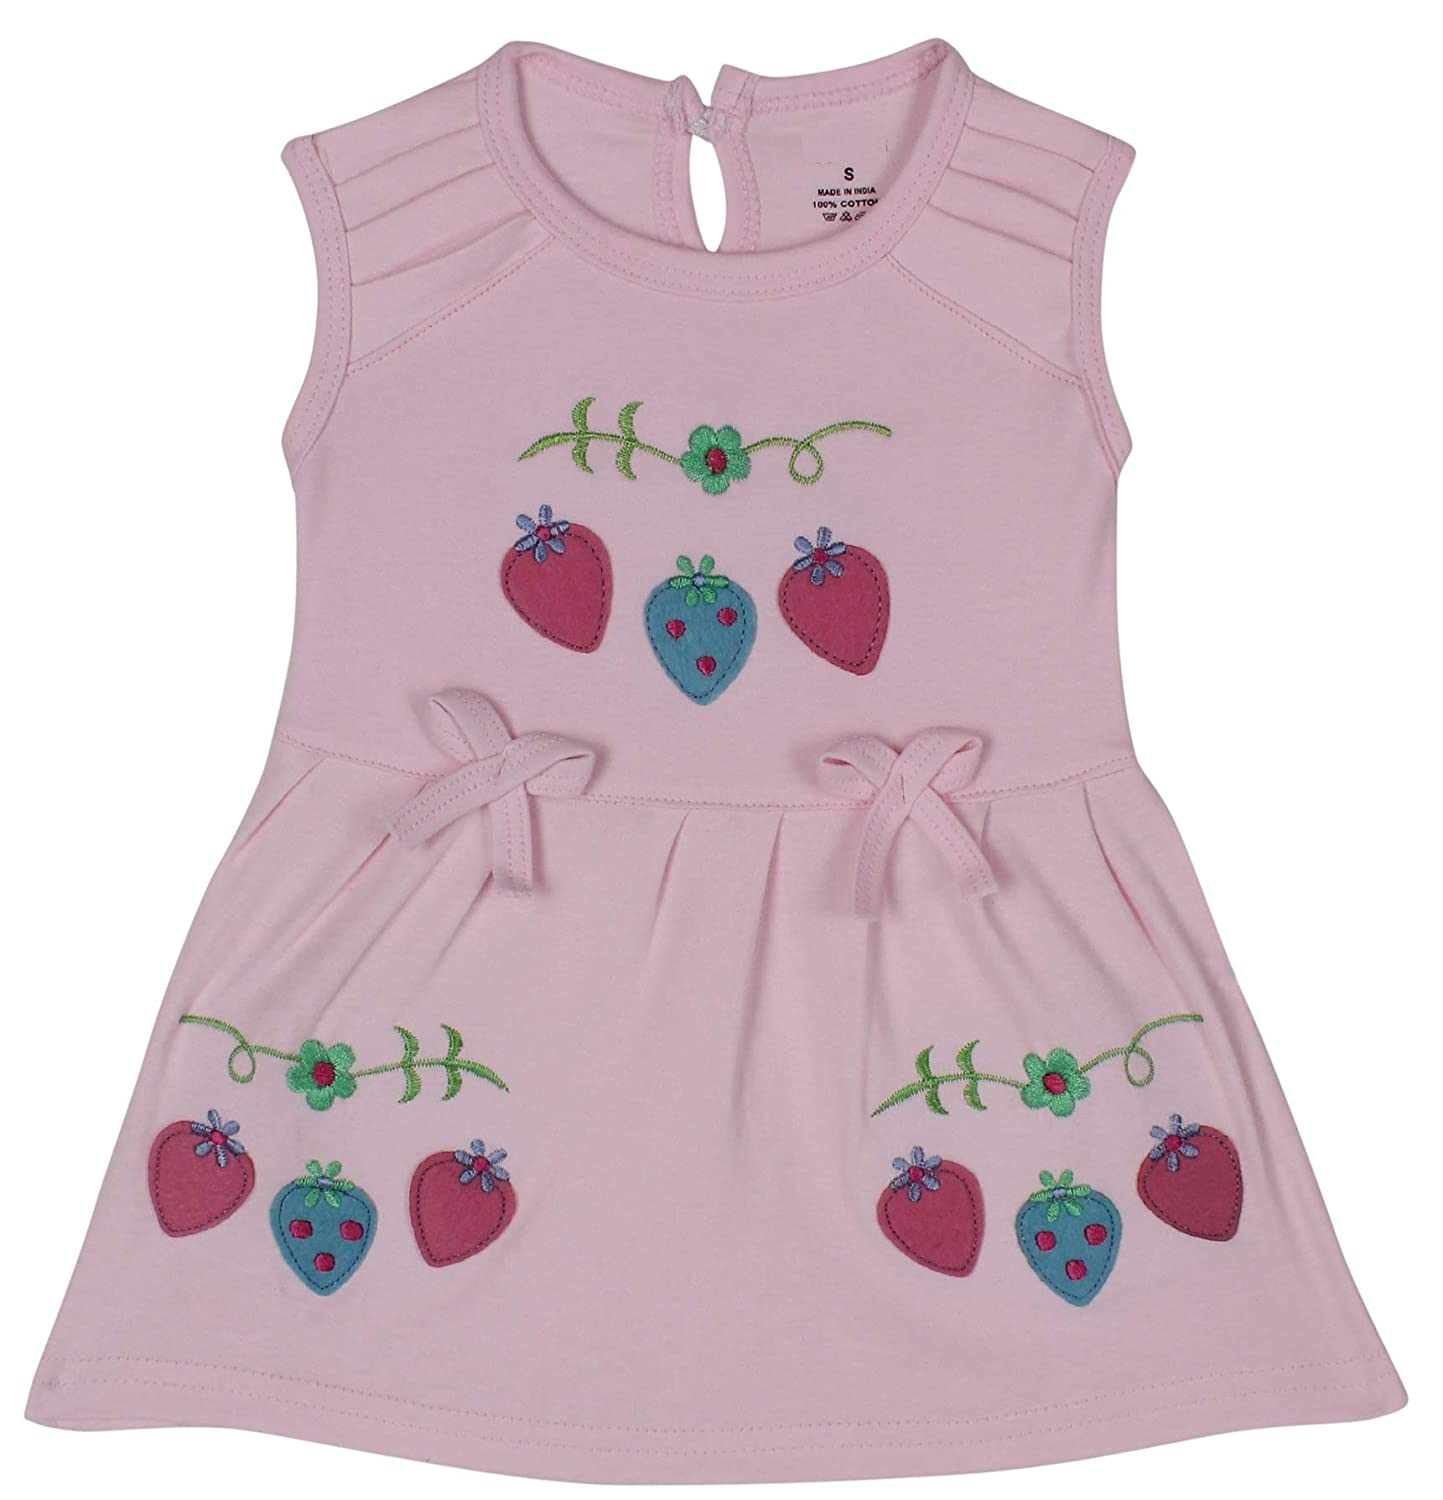 200727930245 Icable High Quality Baby Girl's Cotton Cute Printed Frock with Shorts  (Pink, 3-6 Months): Amazon.in: Baby